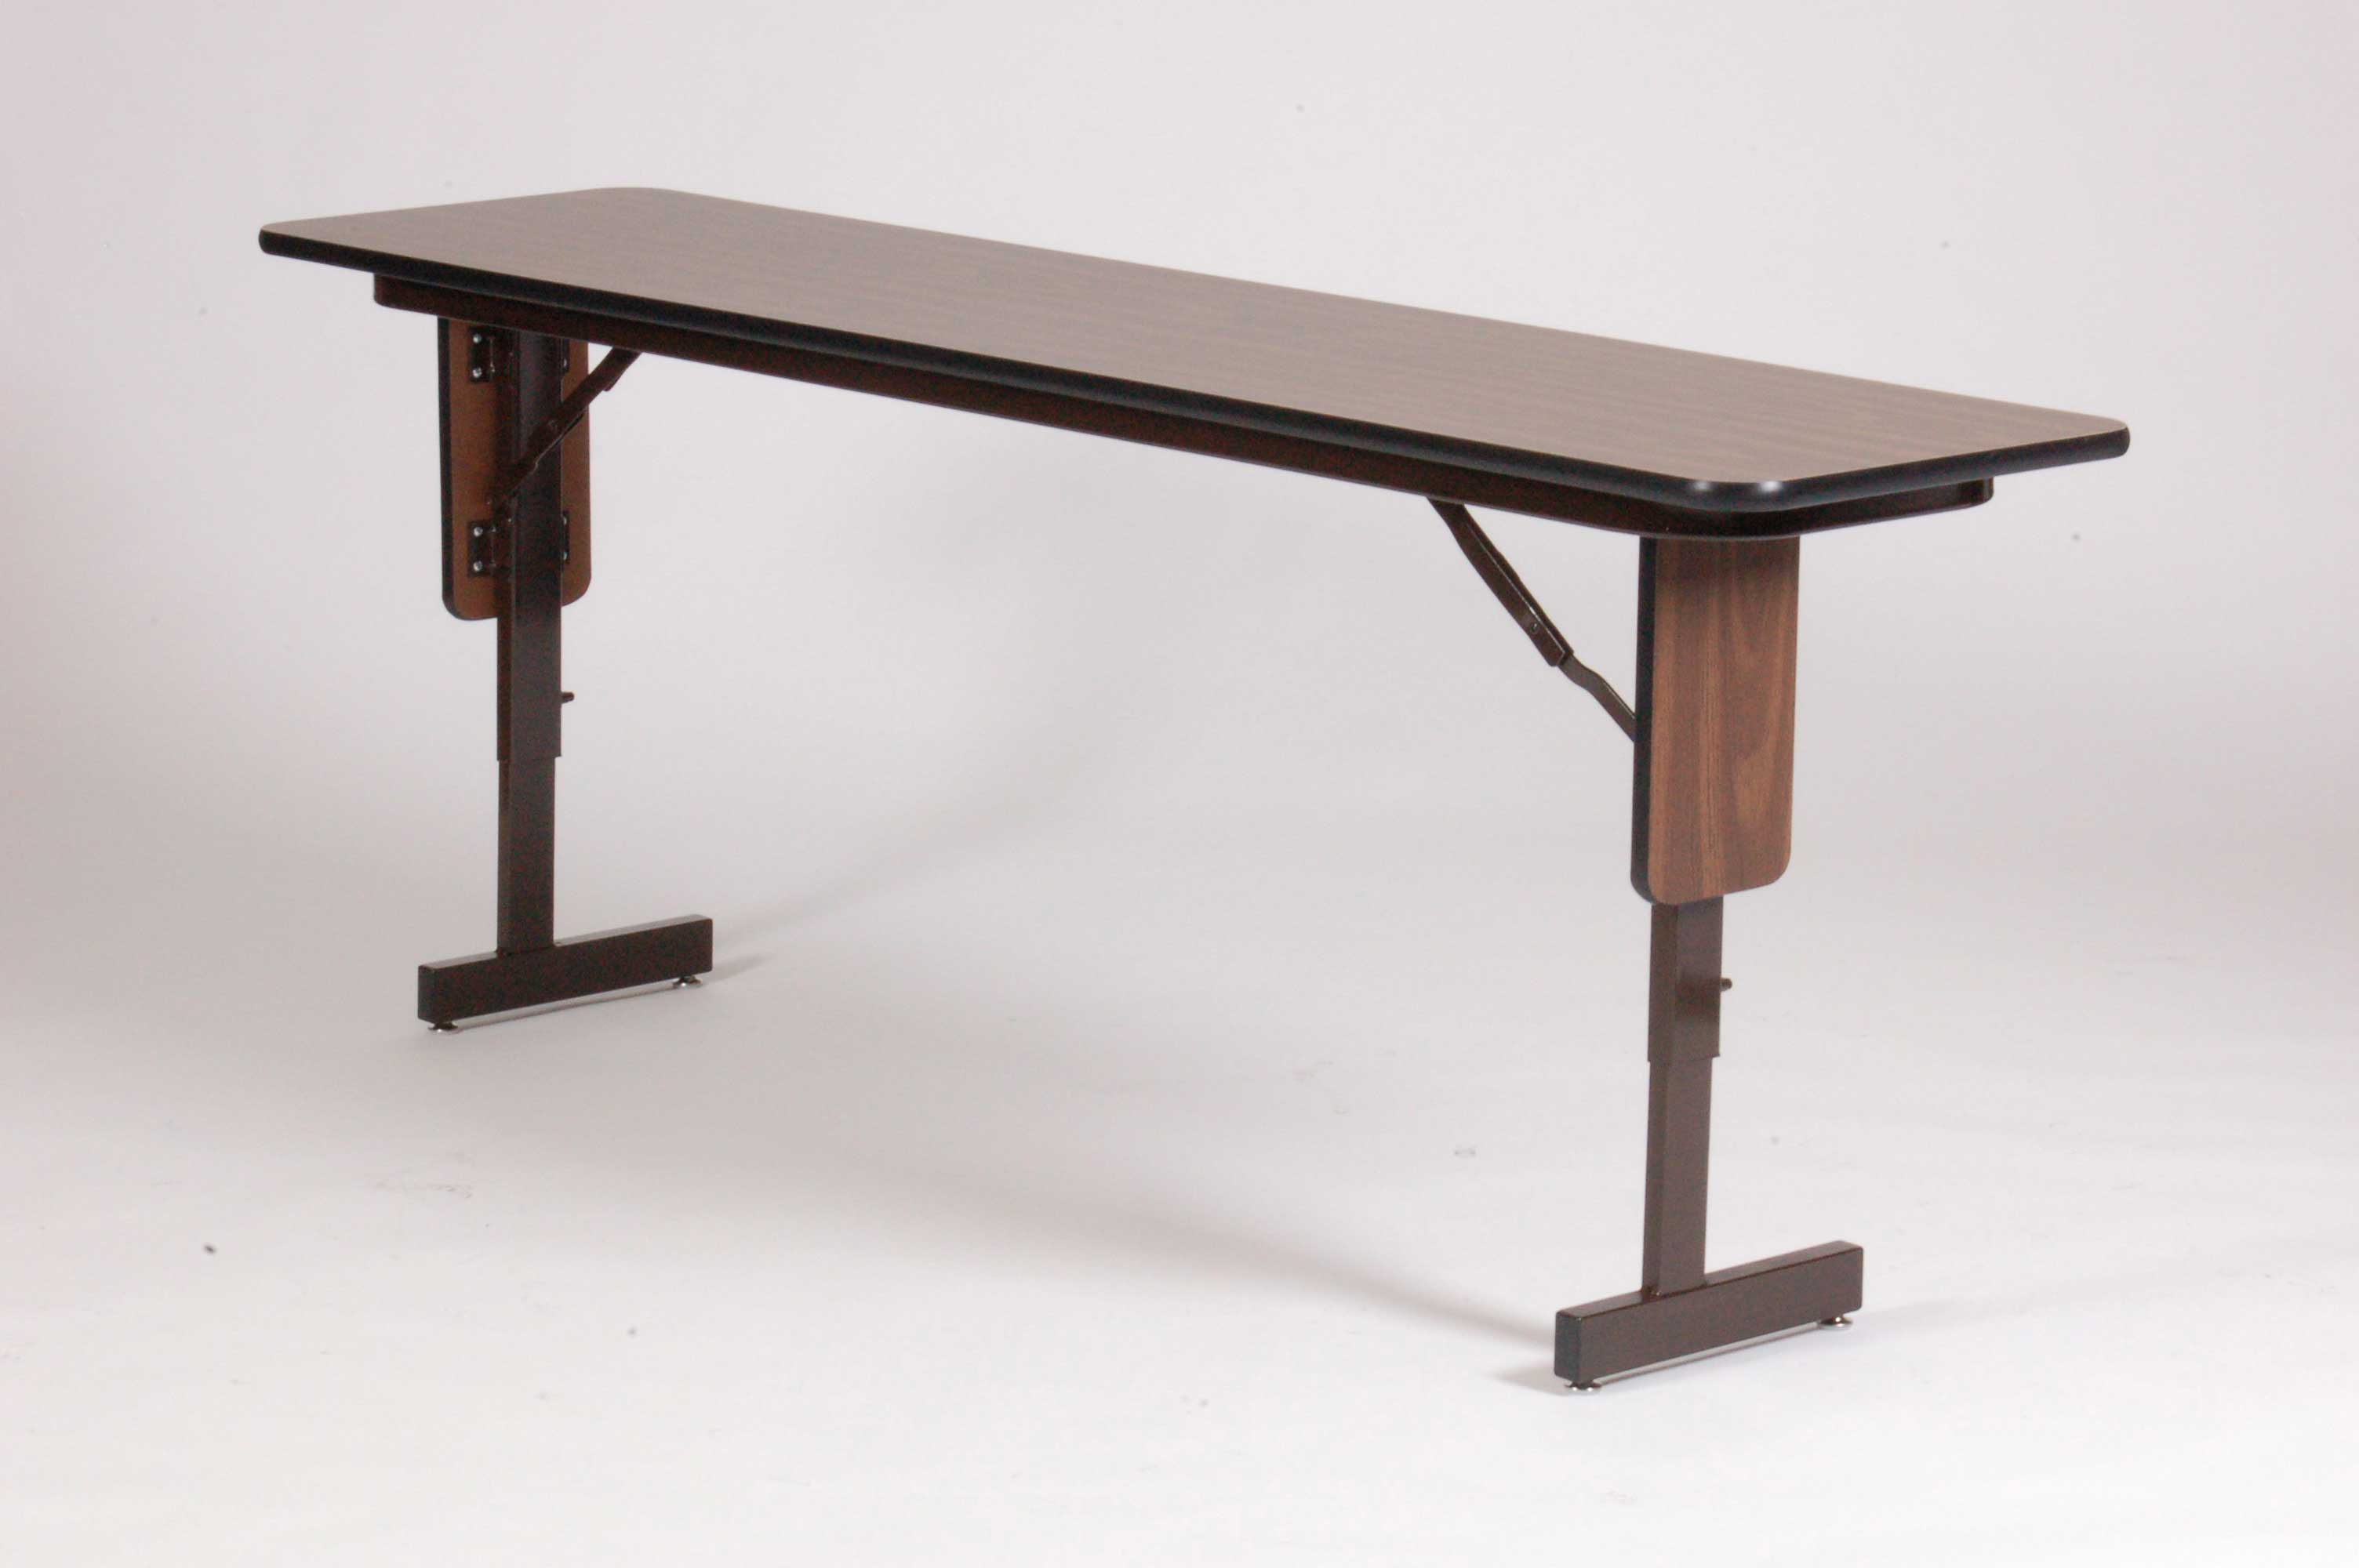 home office adjustable height table and legs